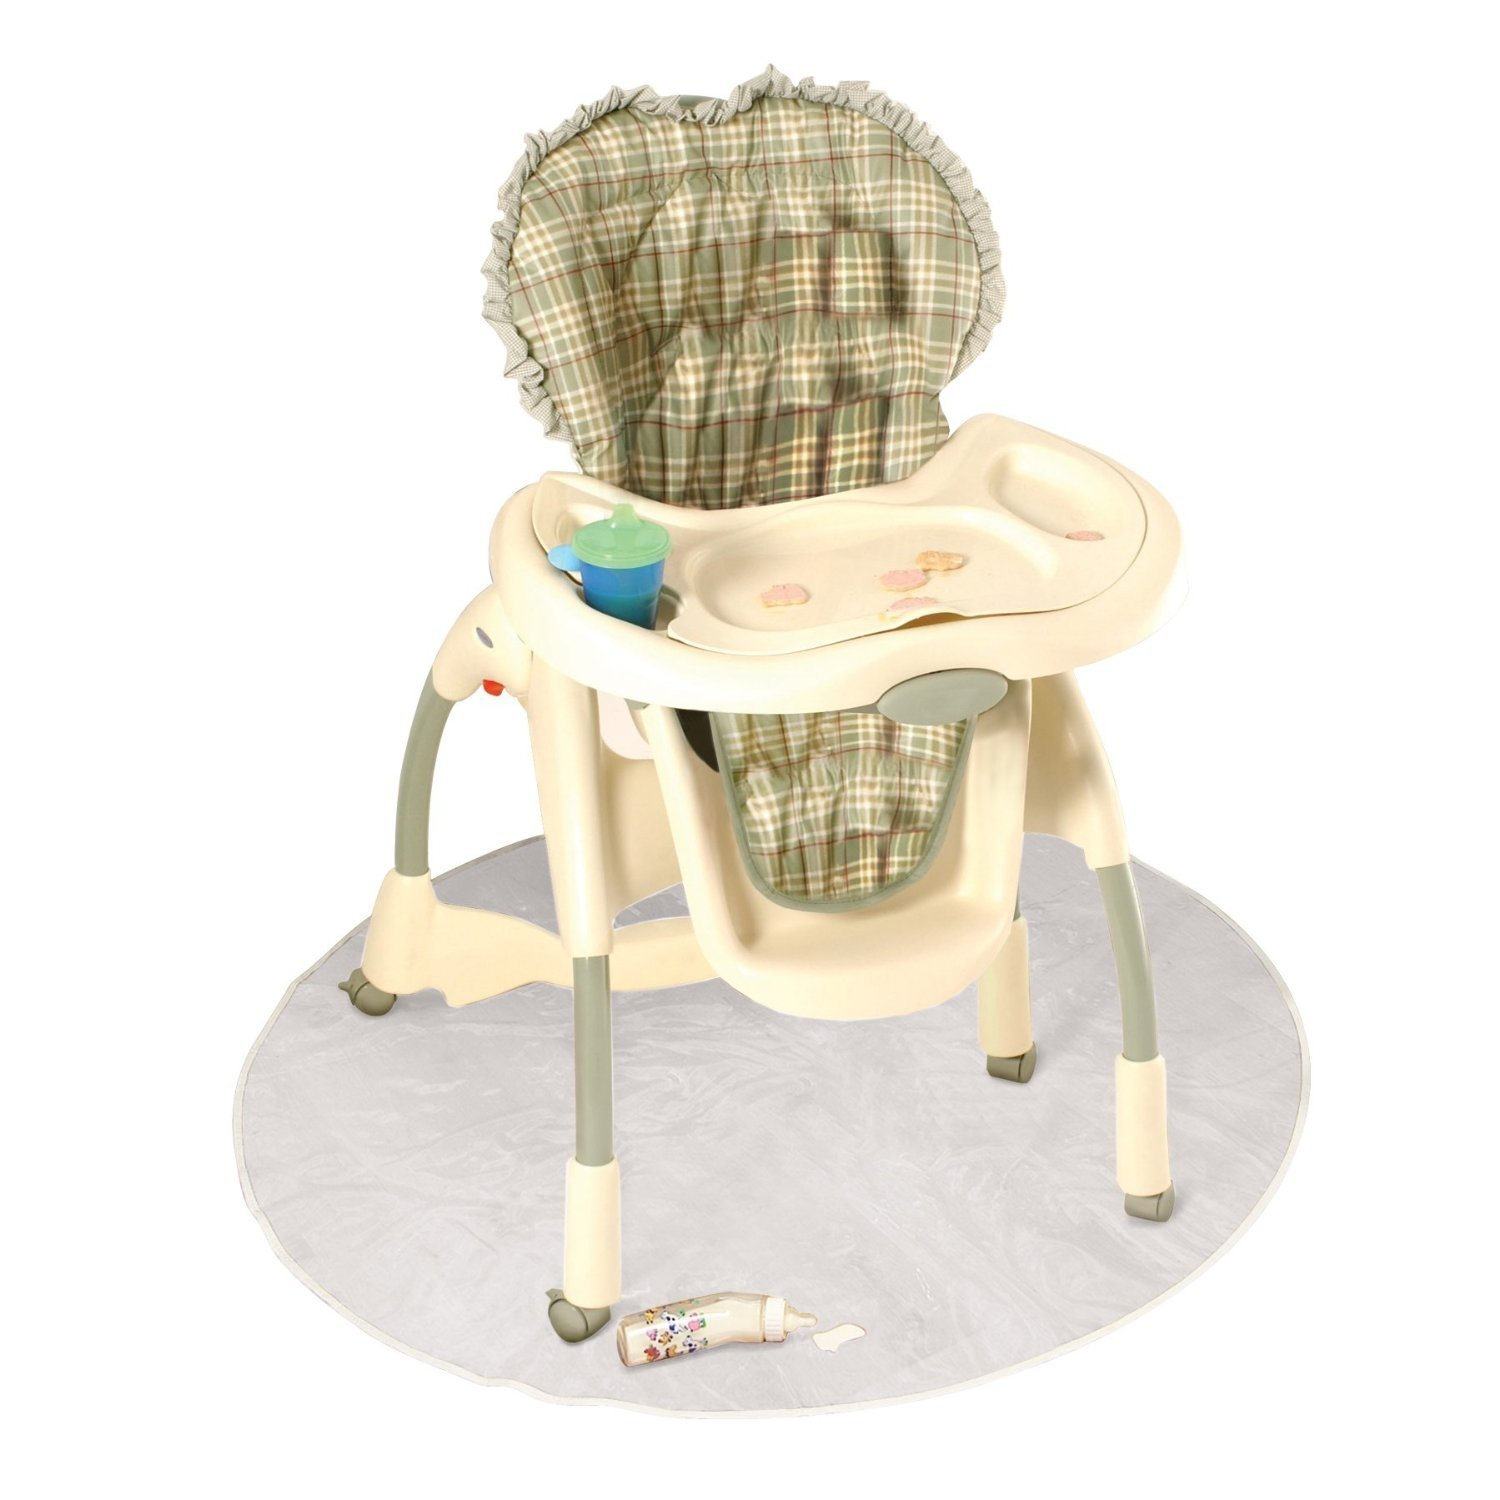 amazon com j is for jeep baby high chair floor protector clear